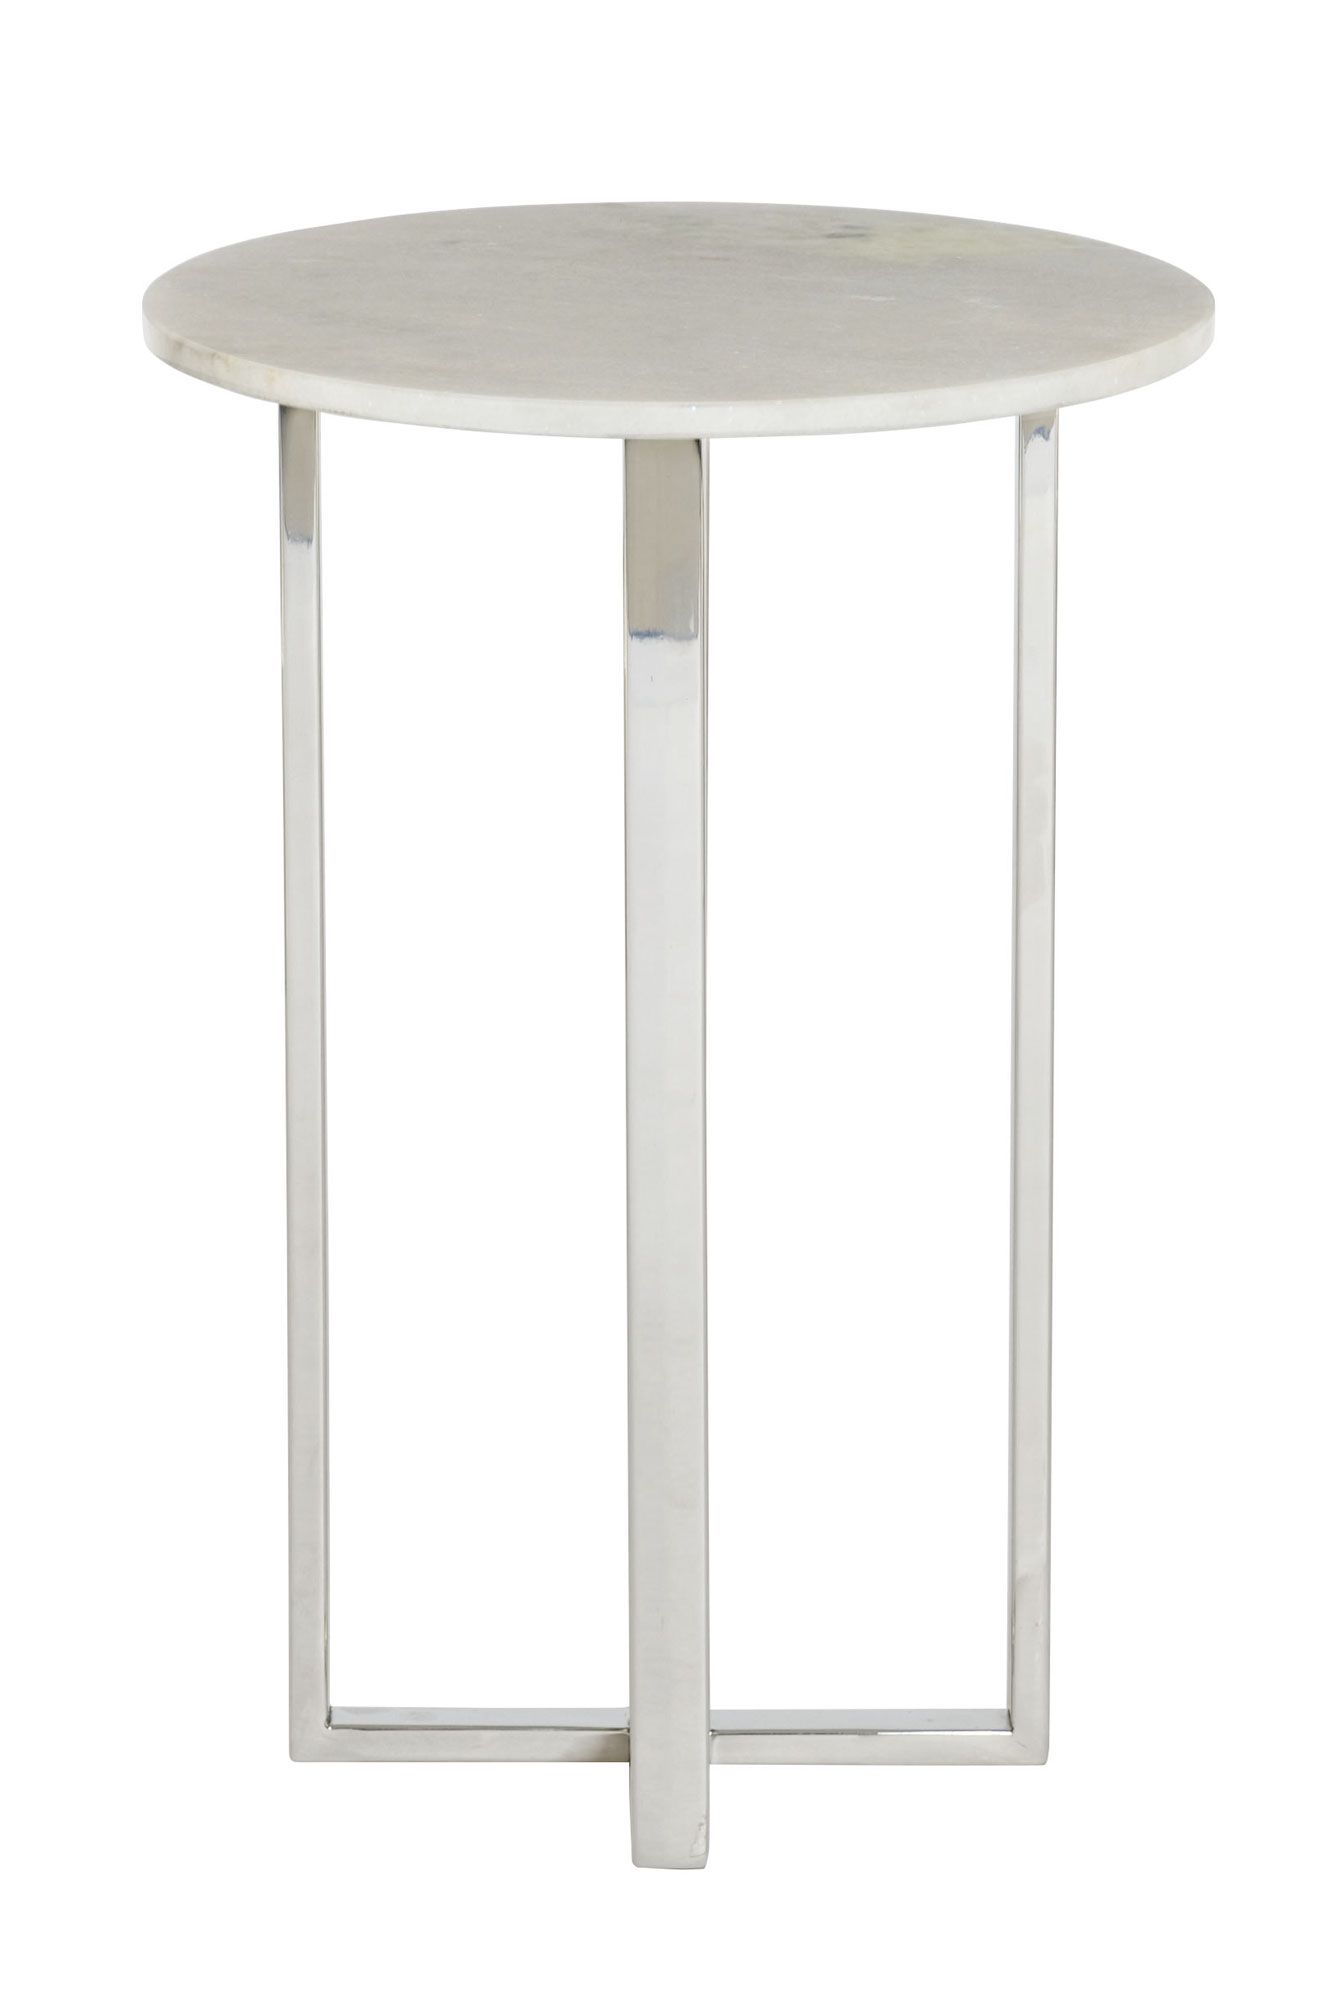 alexi chairside table bernhardt round dia white accent side granite top polished stainless steel base lightfinish chandelier lamp shades small storage chest with drawers pub